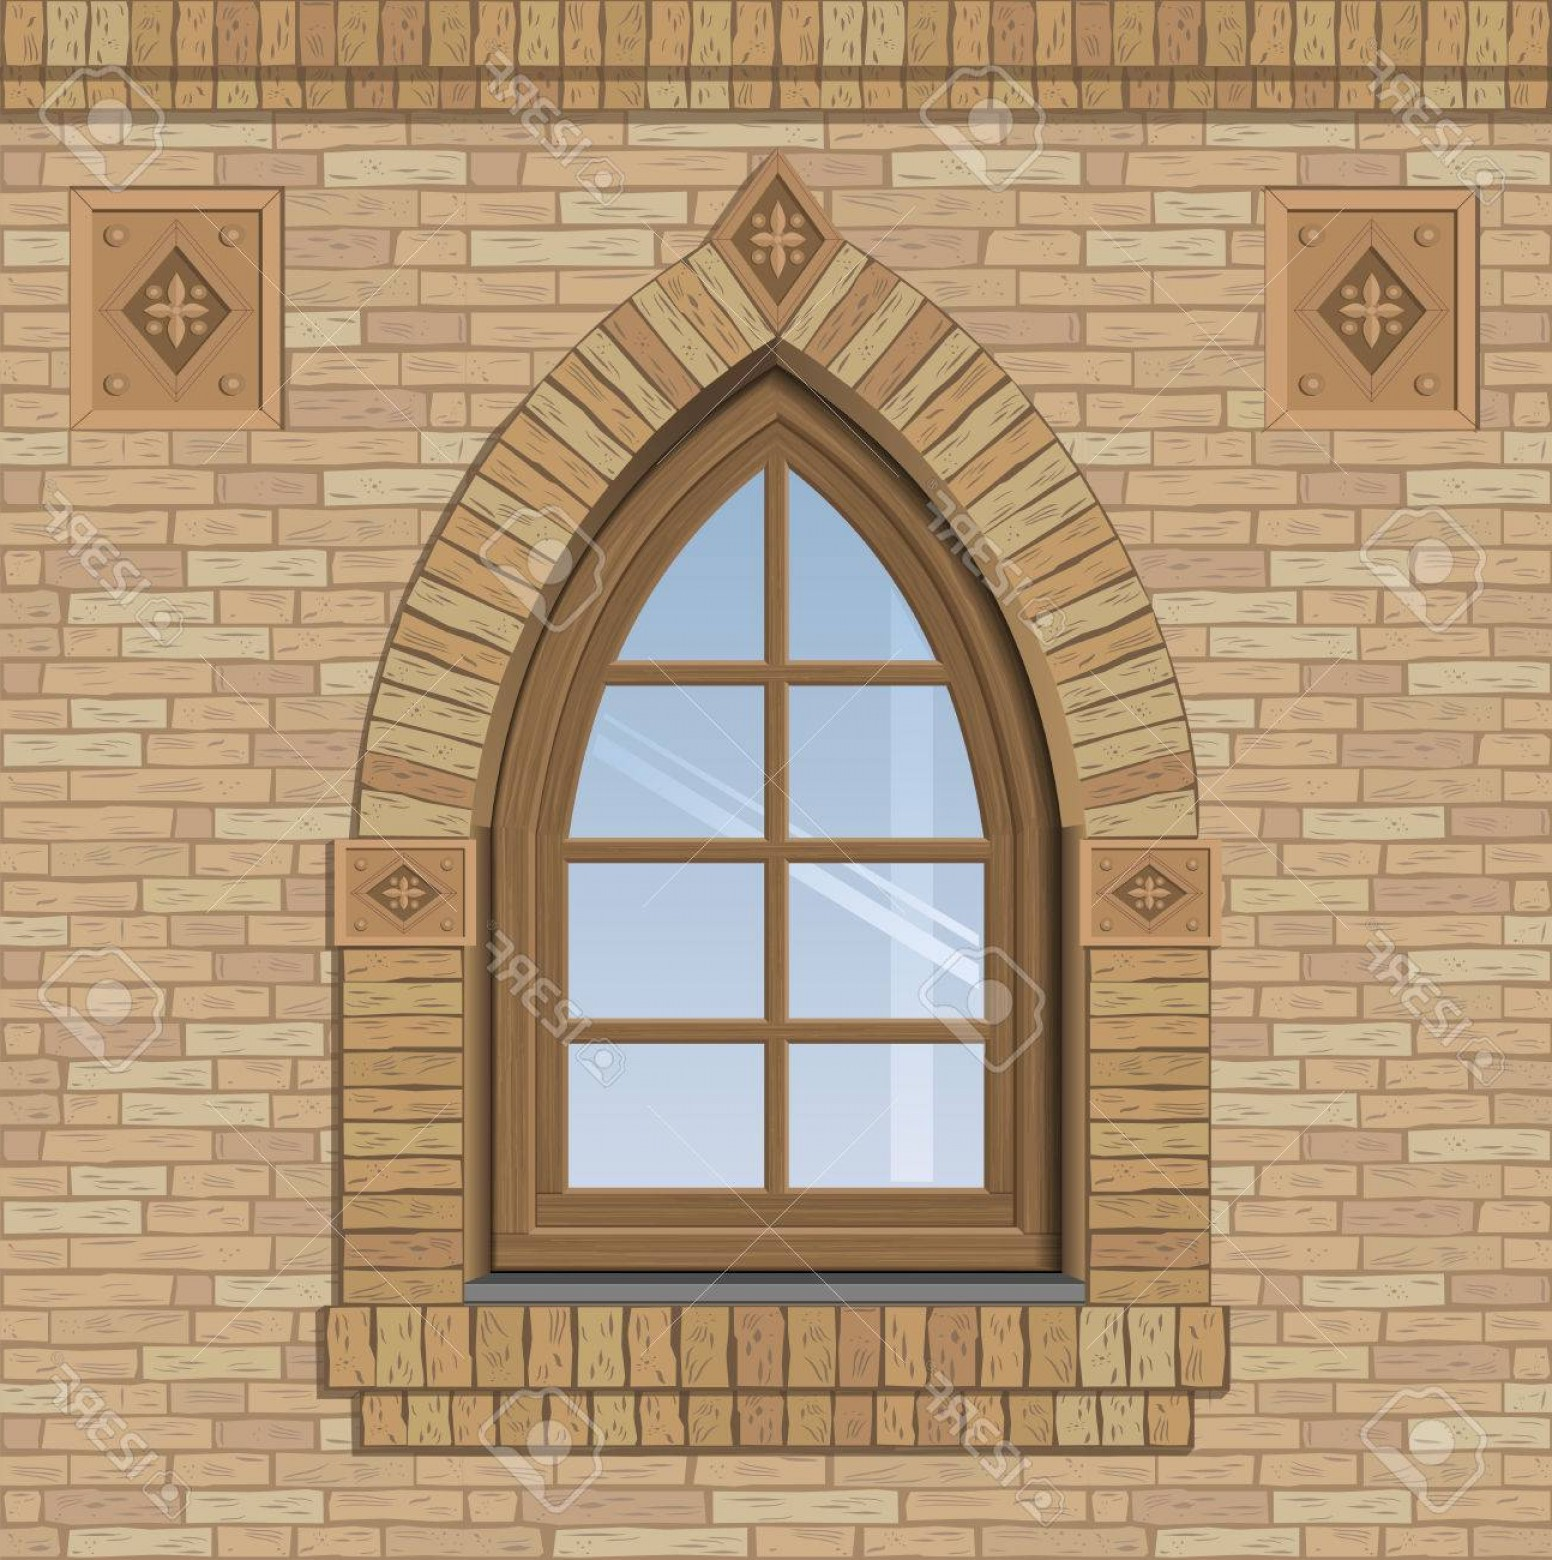 Clay Window Vector: Photostock Vector Arched Antique Window On A Brick Wall The Texture Of The Building Facade Vector Graphics